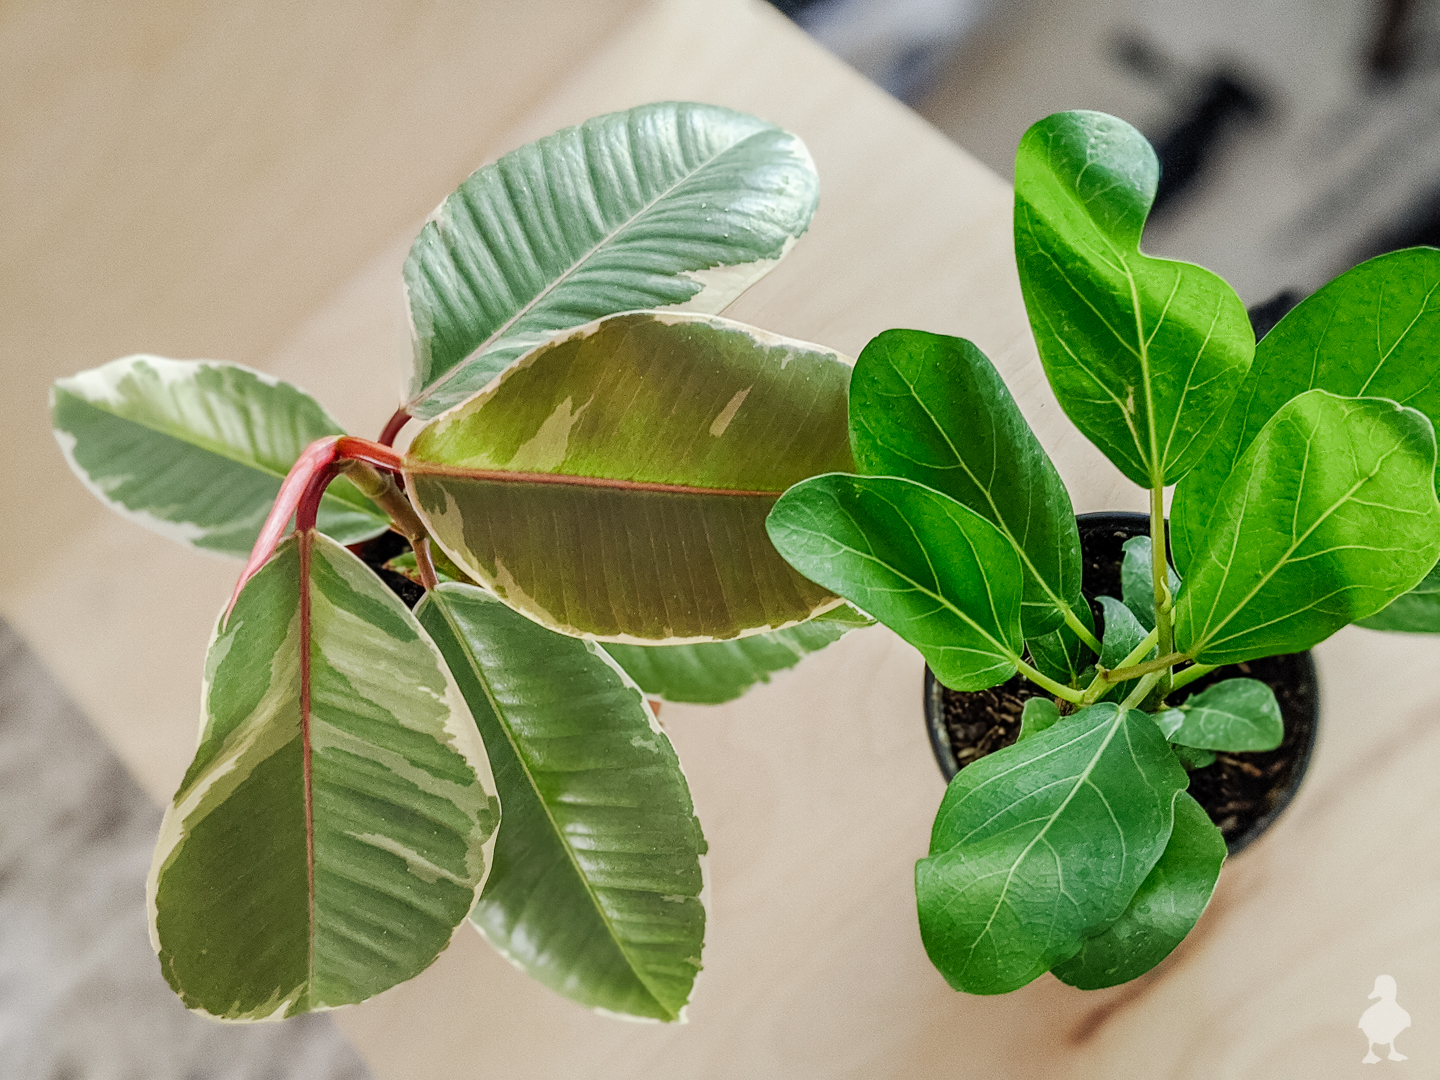 ficus tineke and ficus audrey ordered thorugh Etsy